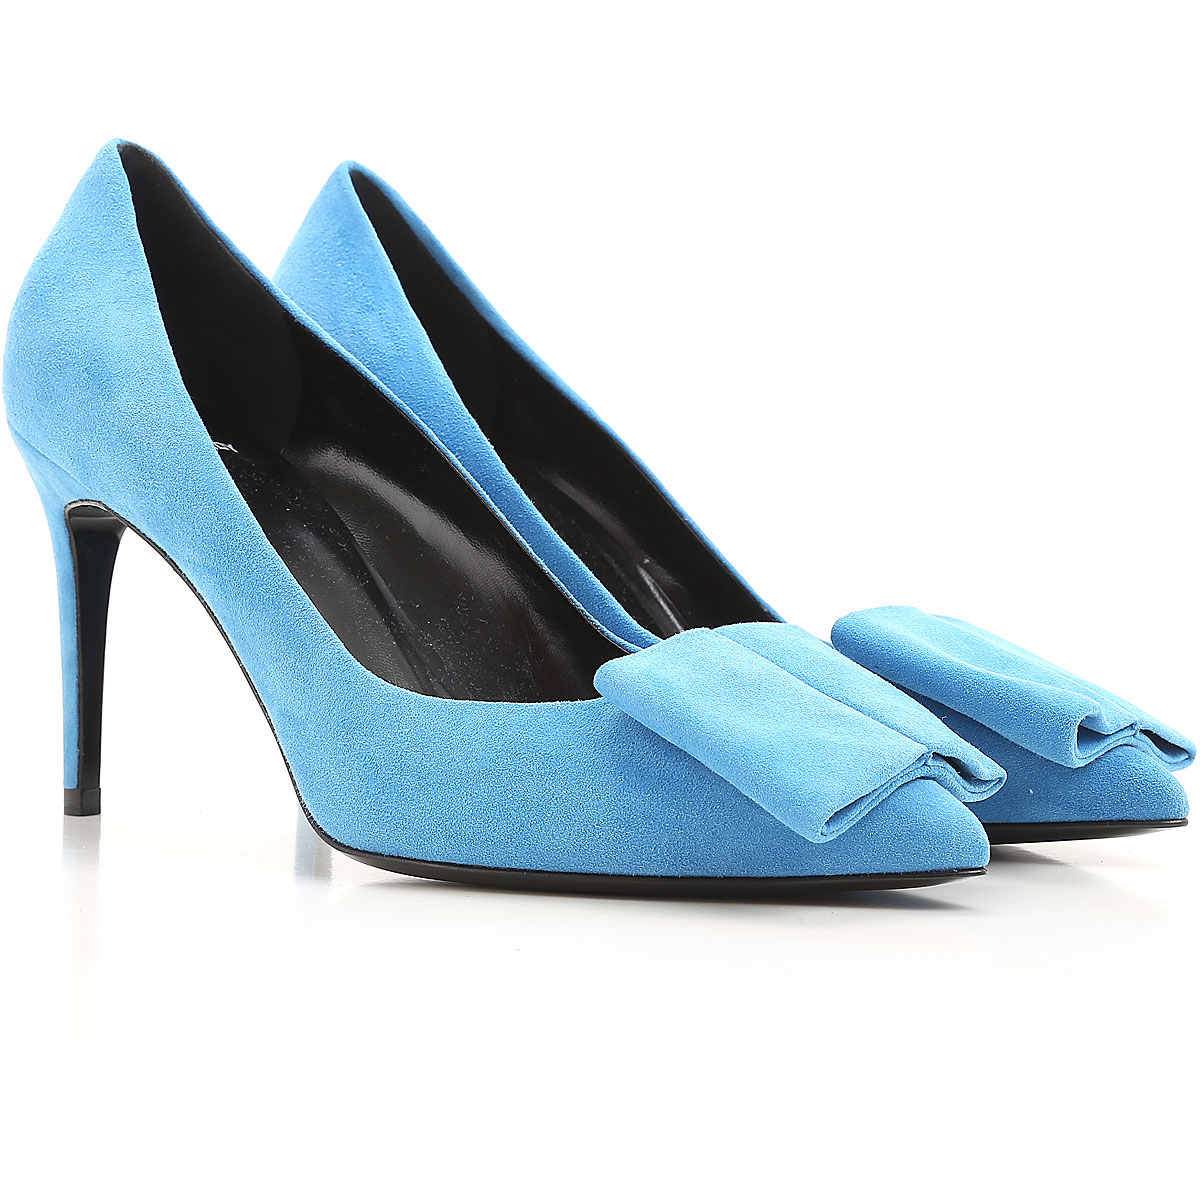 Image of Pierre Hardy Pumps & High Heels for Women On Sale, Celestial, Suede leather, 2017, 6 8.5